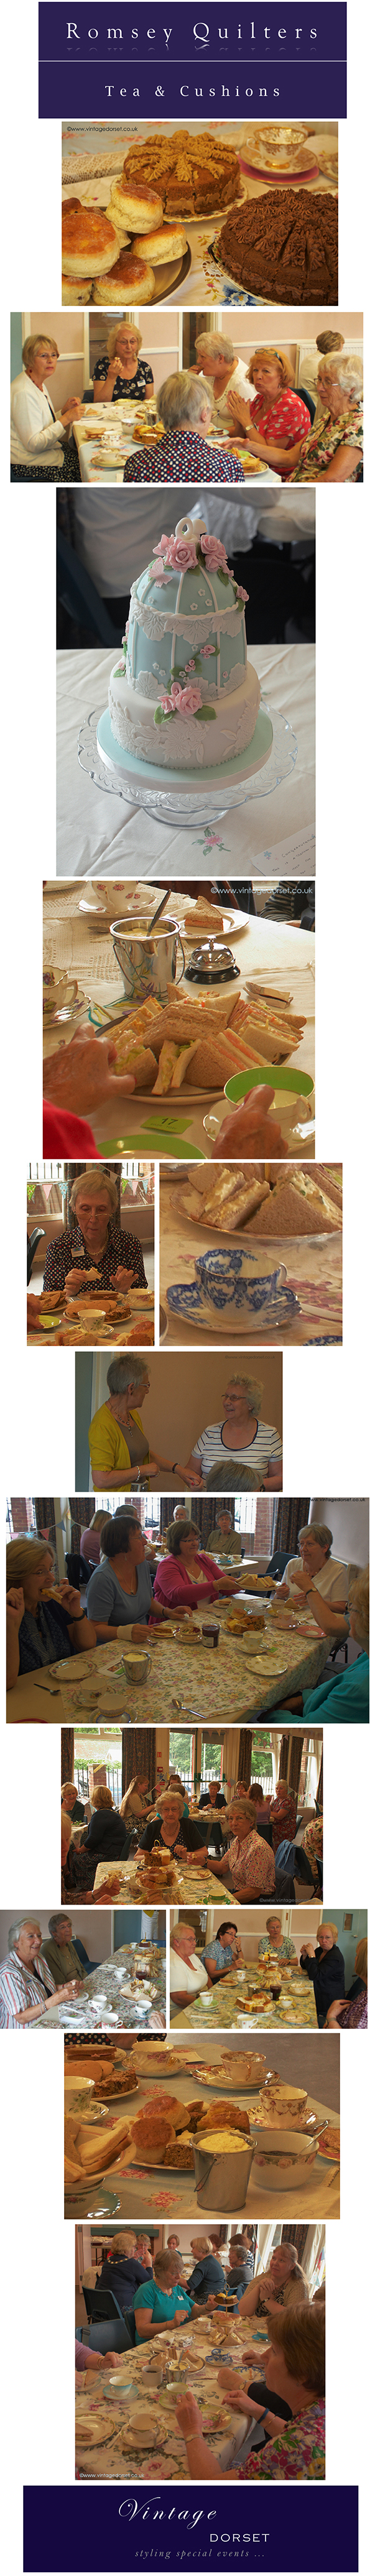 Romsey Quilters Afternoon Tea Vintage Dorset